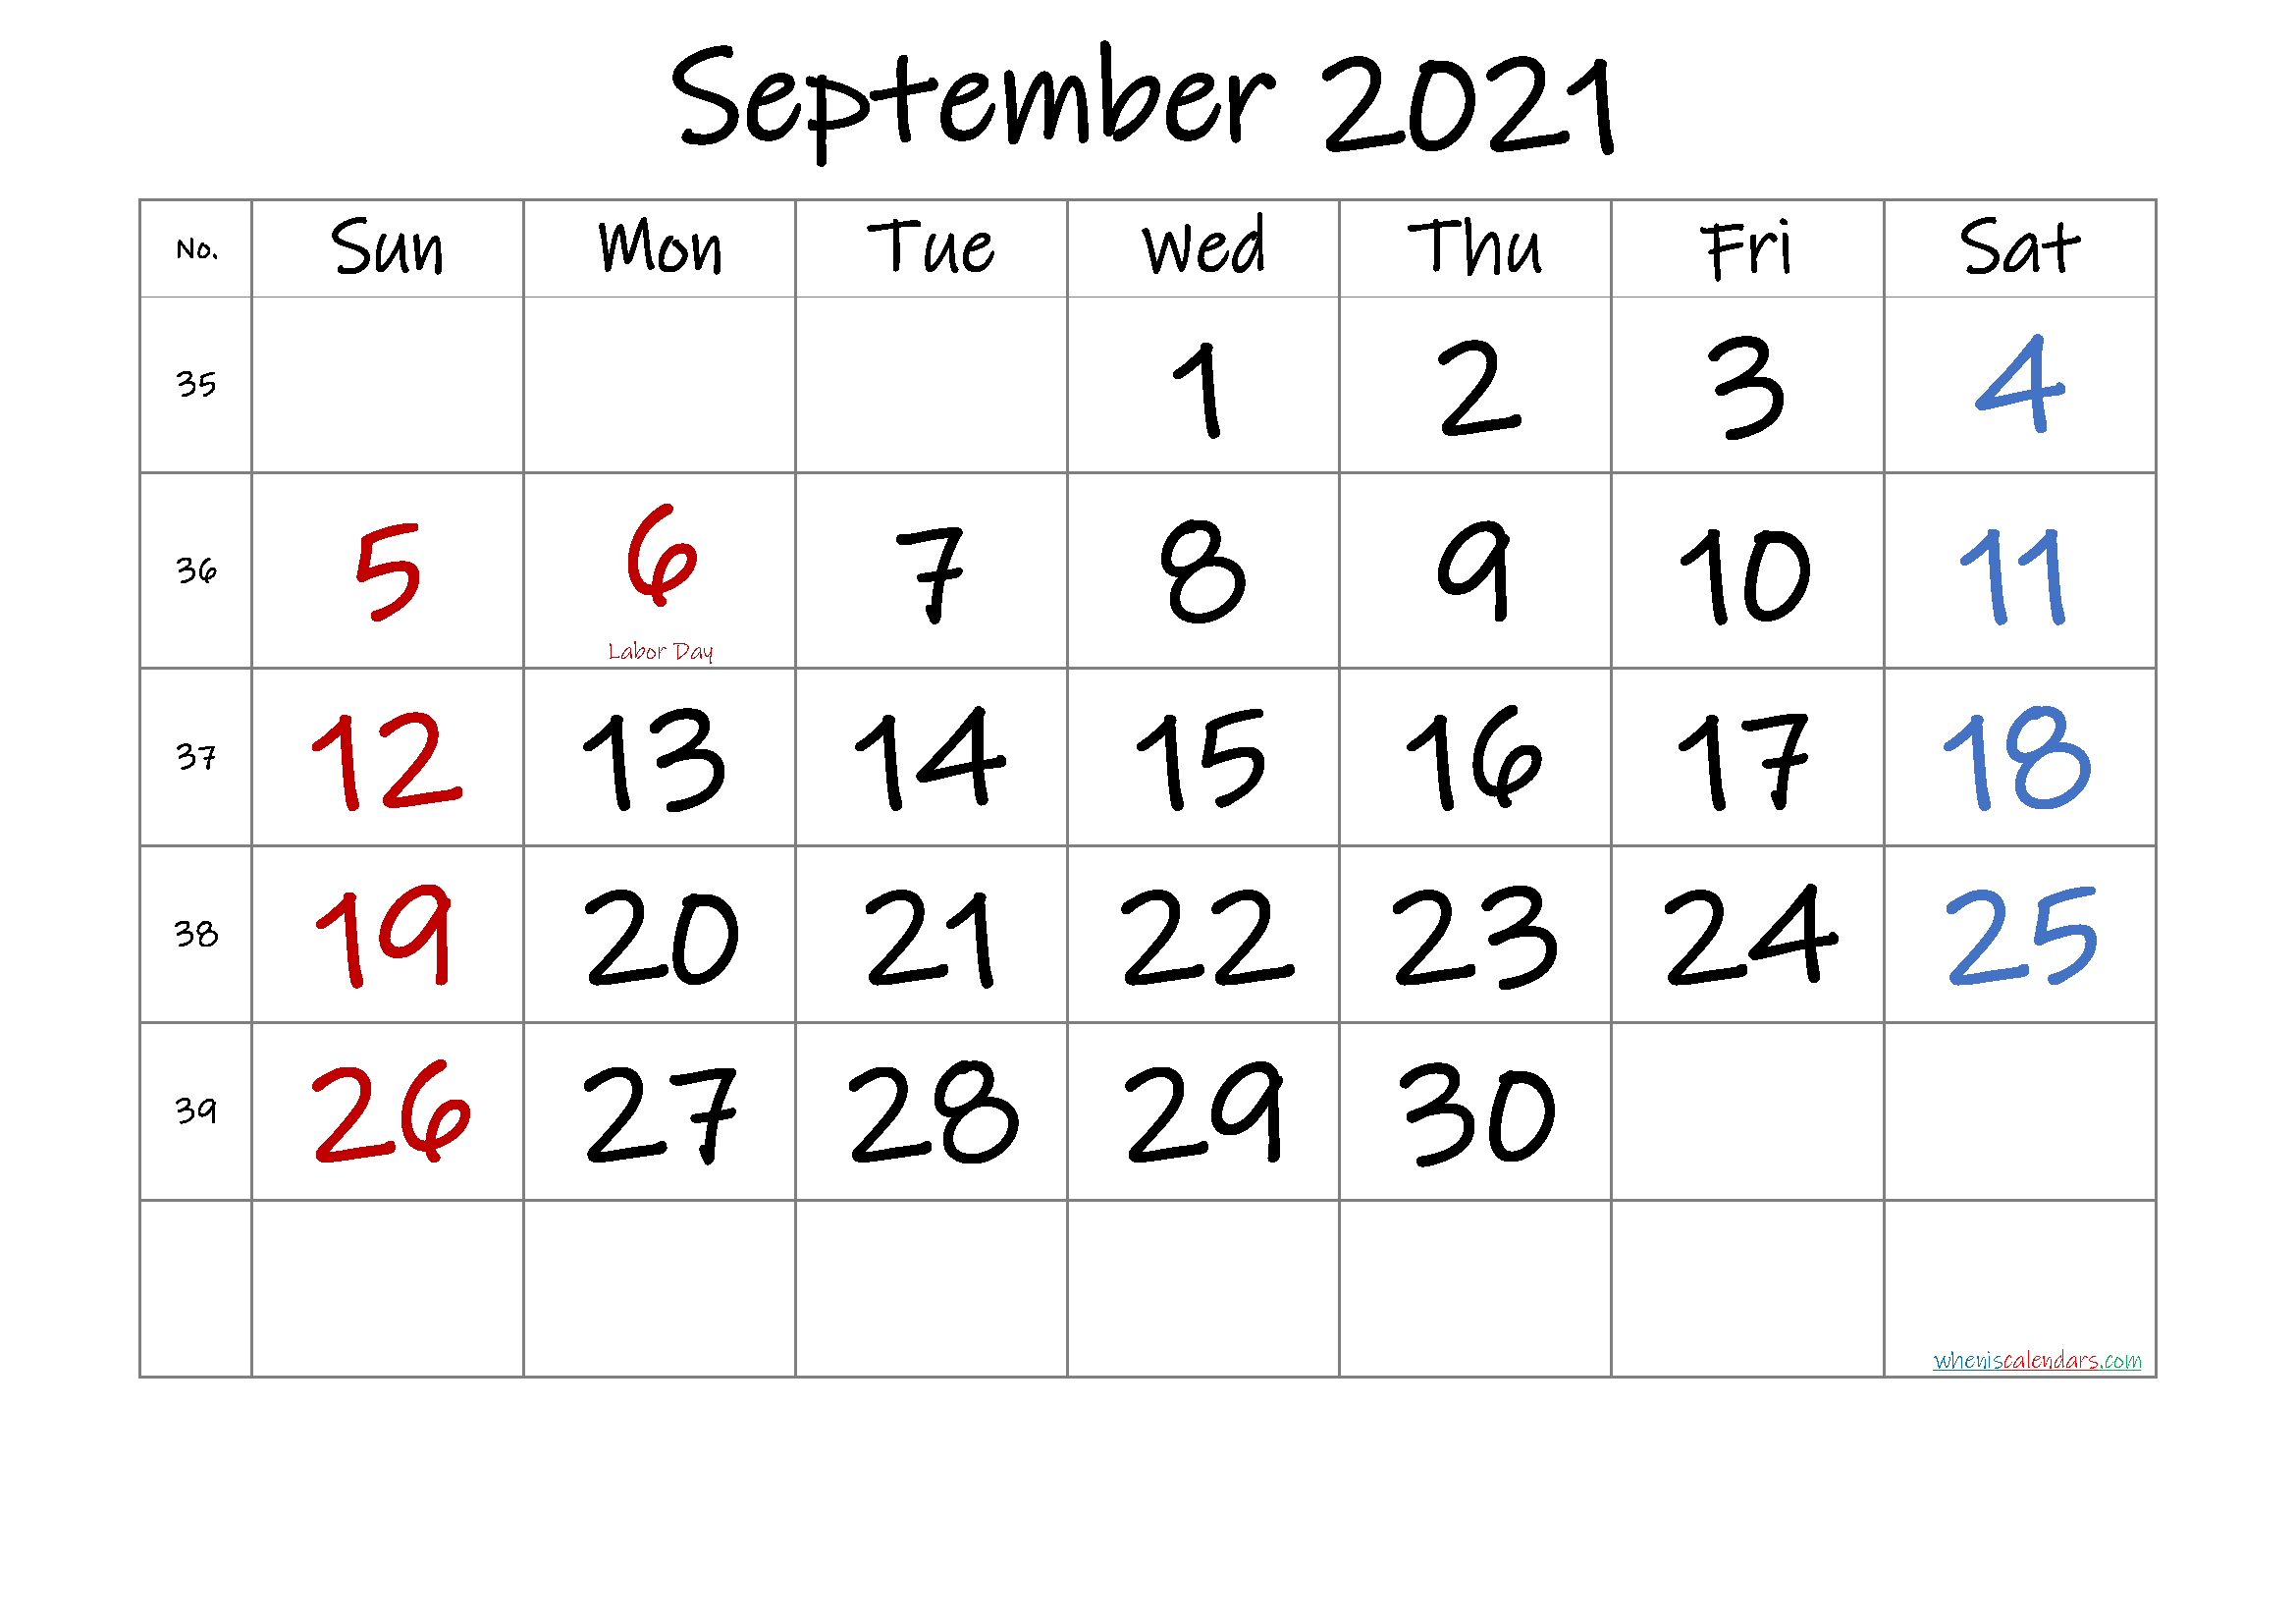 SEPTEMBER 2021 Printable Calendar with Holidays